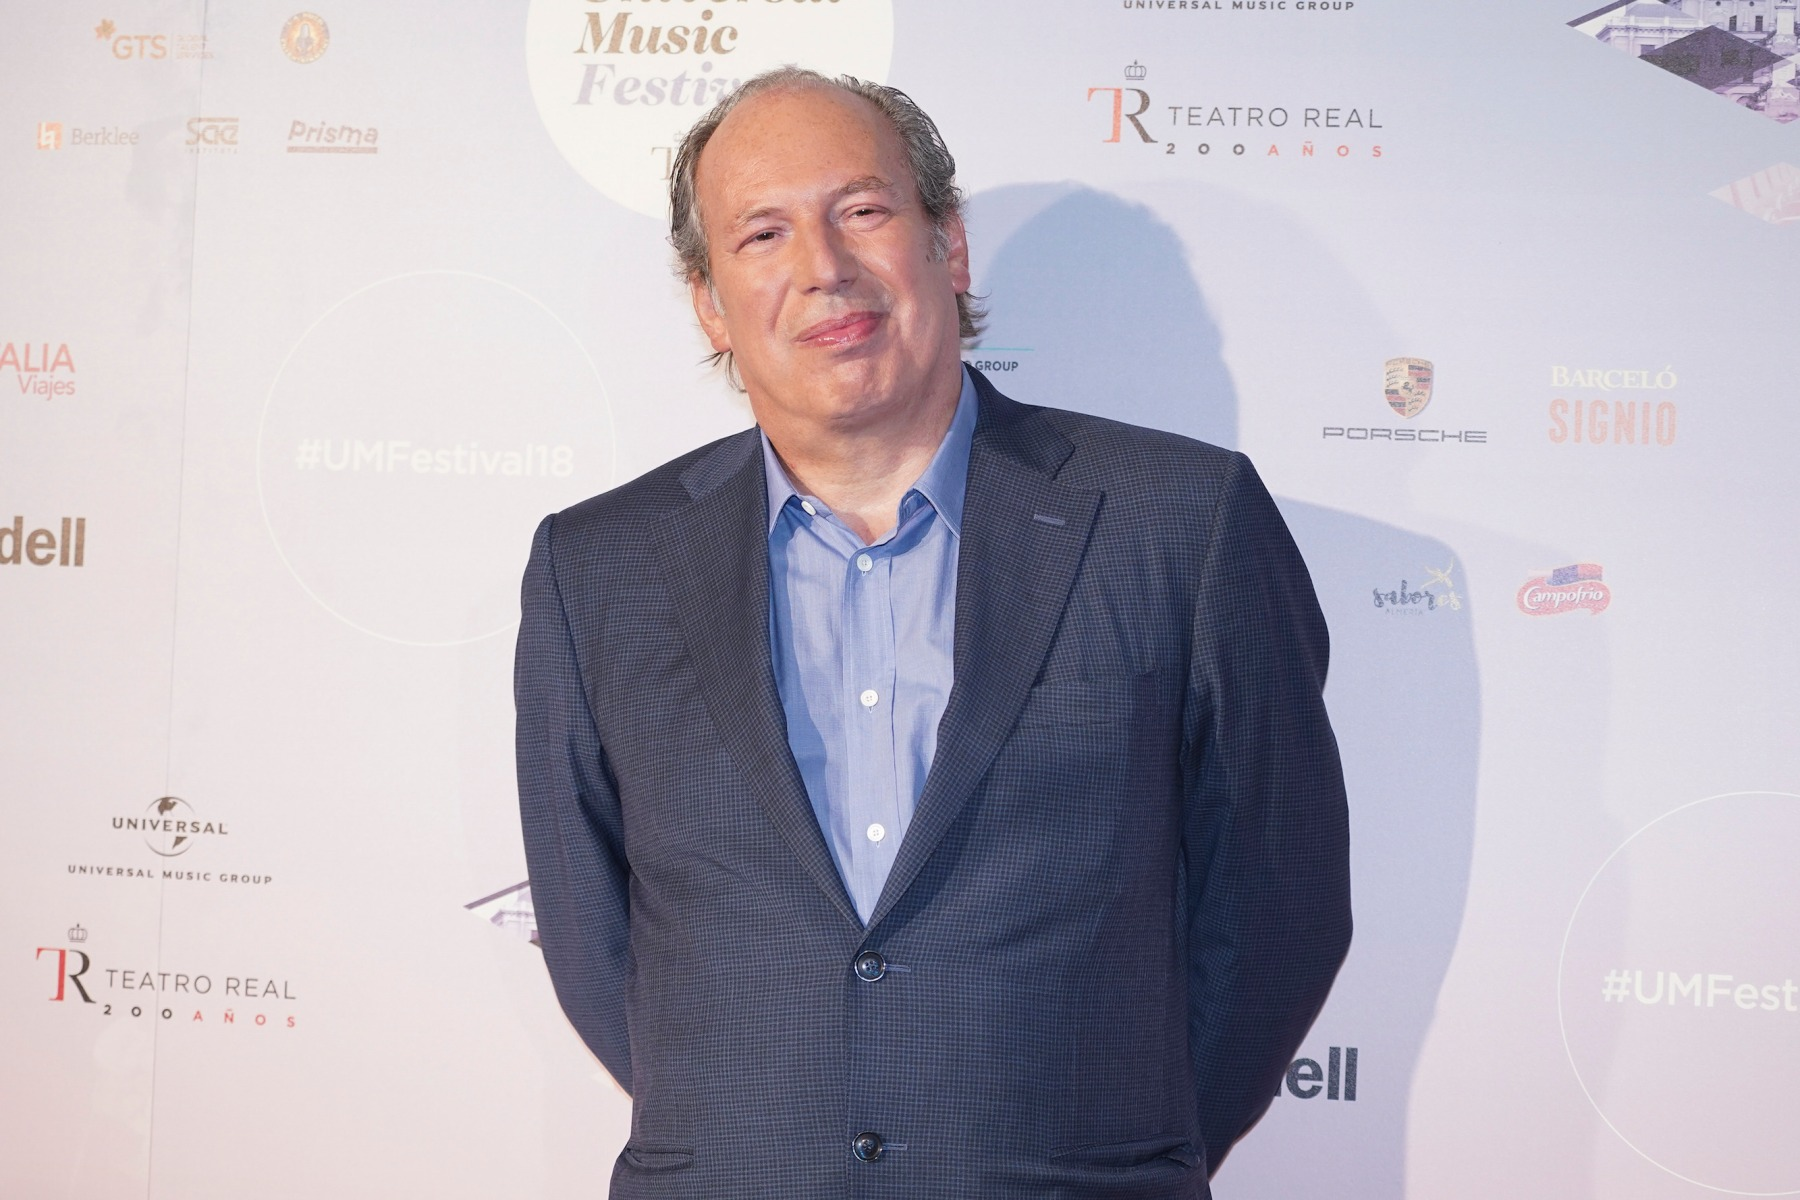 Composer Hans Zimmer attends a press conference at Royal Theatre on July 3, 2018 in Madrid, Spain. (Photo by Oscar Gonzalez/NurPhoto via Getty Images)